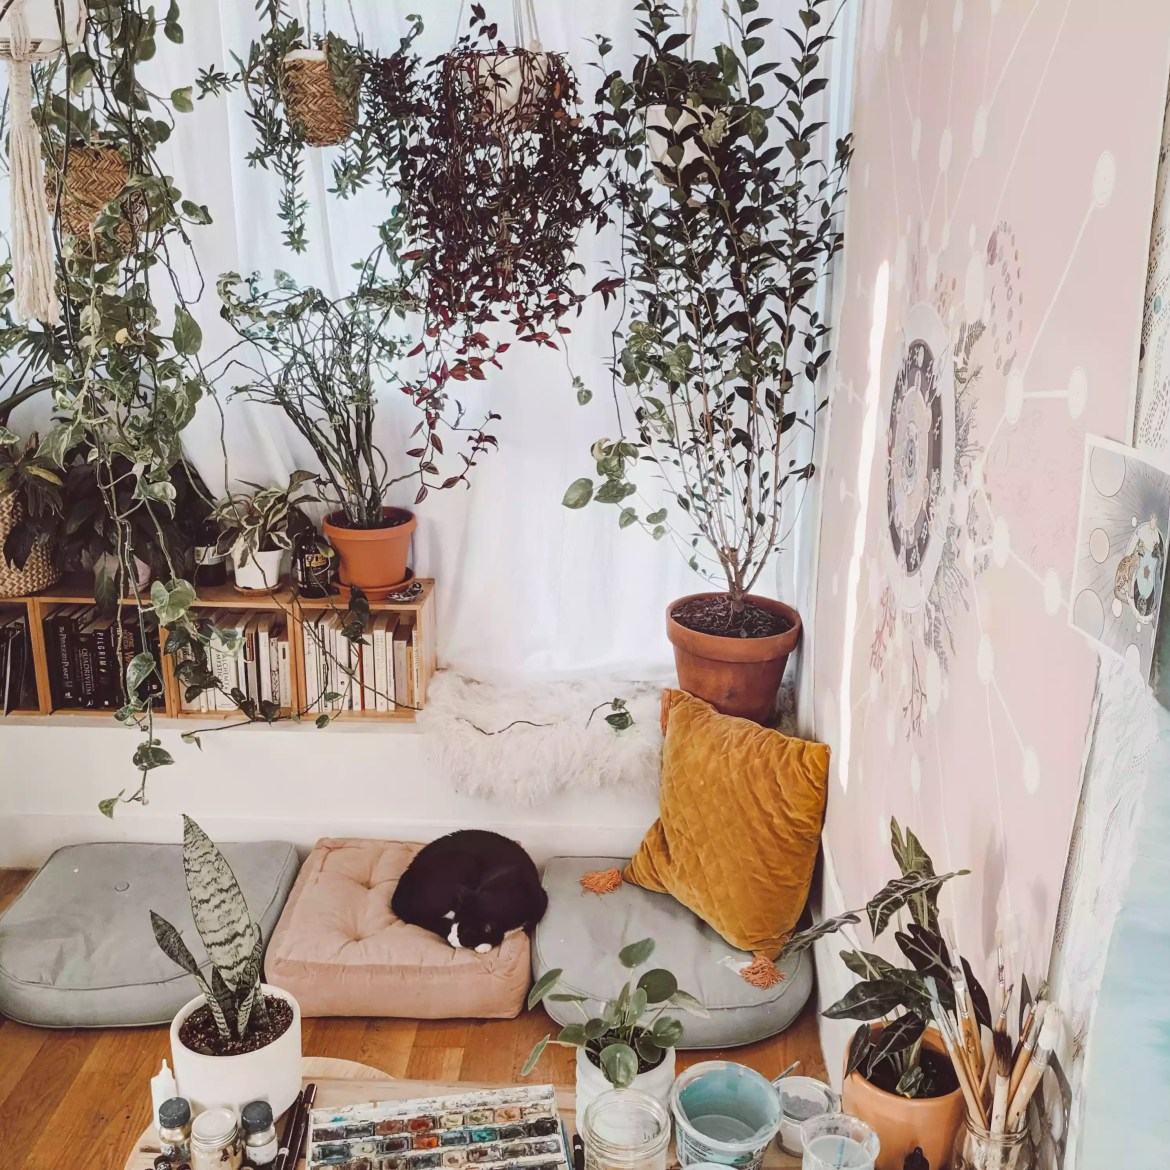 Living room with lots of hanging plants.